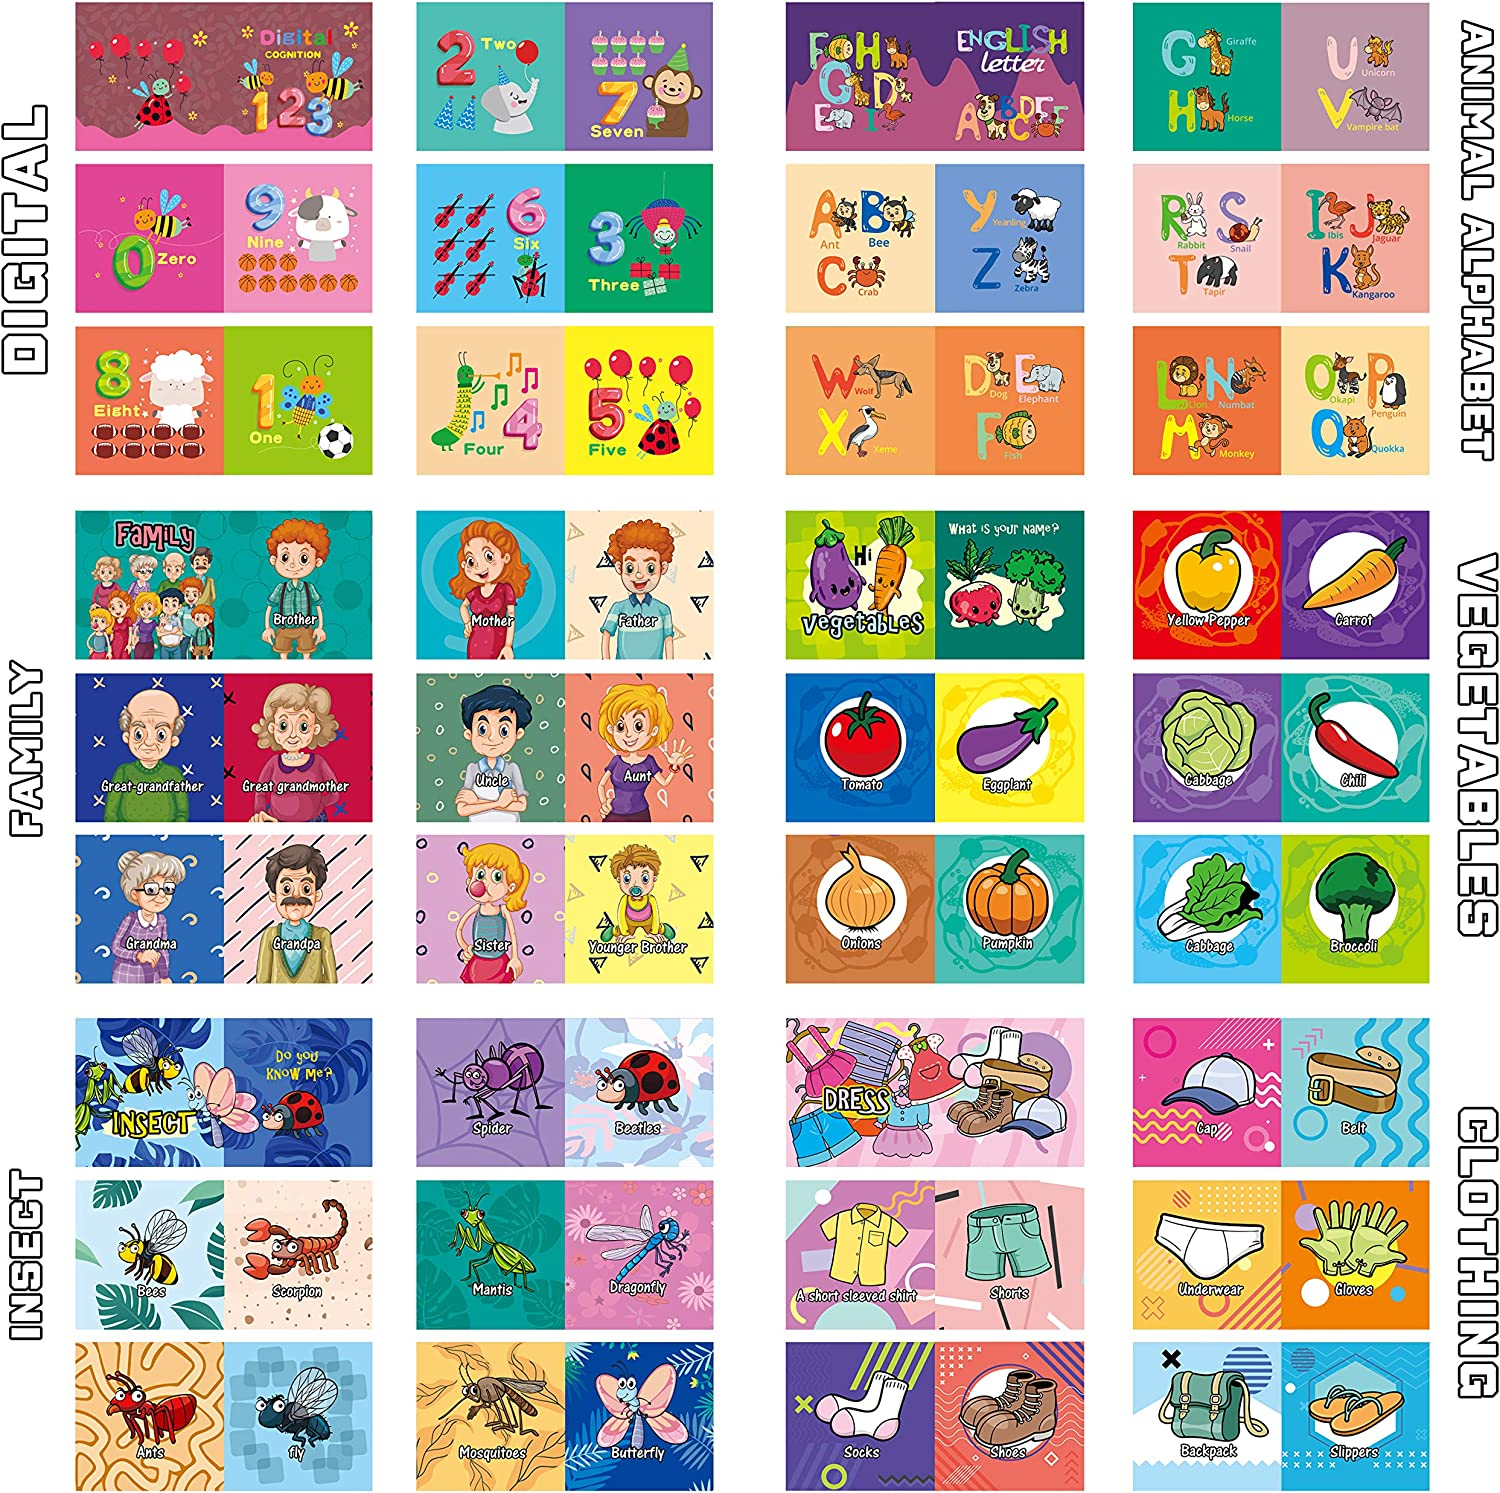 Pack of 12 Baby Bath Books,Nontoxic Fabric Soft Baby Cloth Books,Early Education Toys,Waterproof Baby Books for Toddler Infants Perfect Shower Toys,Kids Bath Toys Best Gift